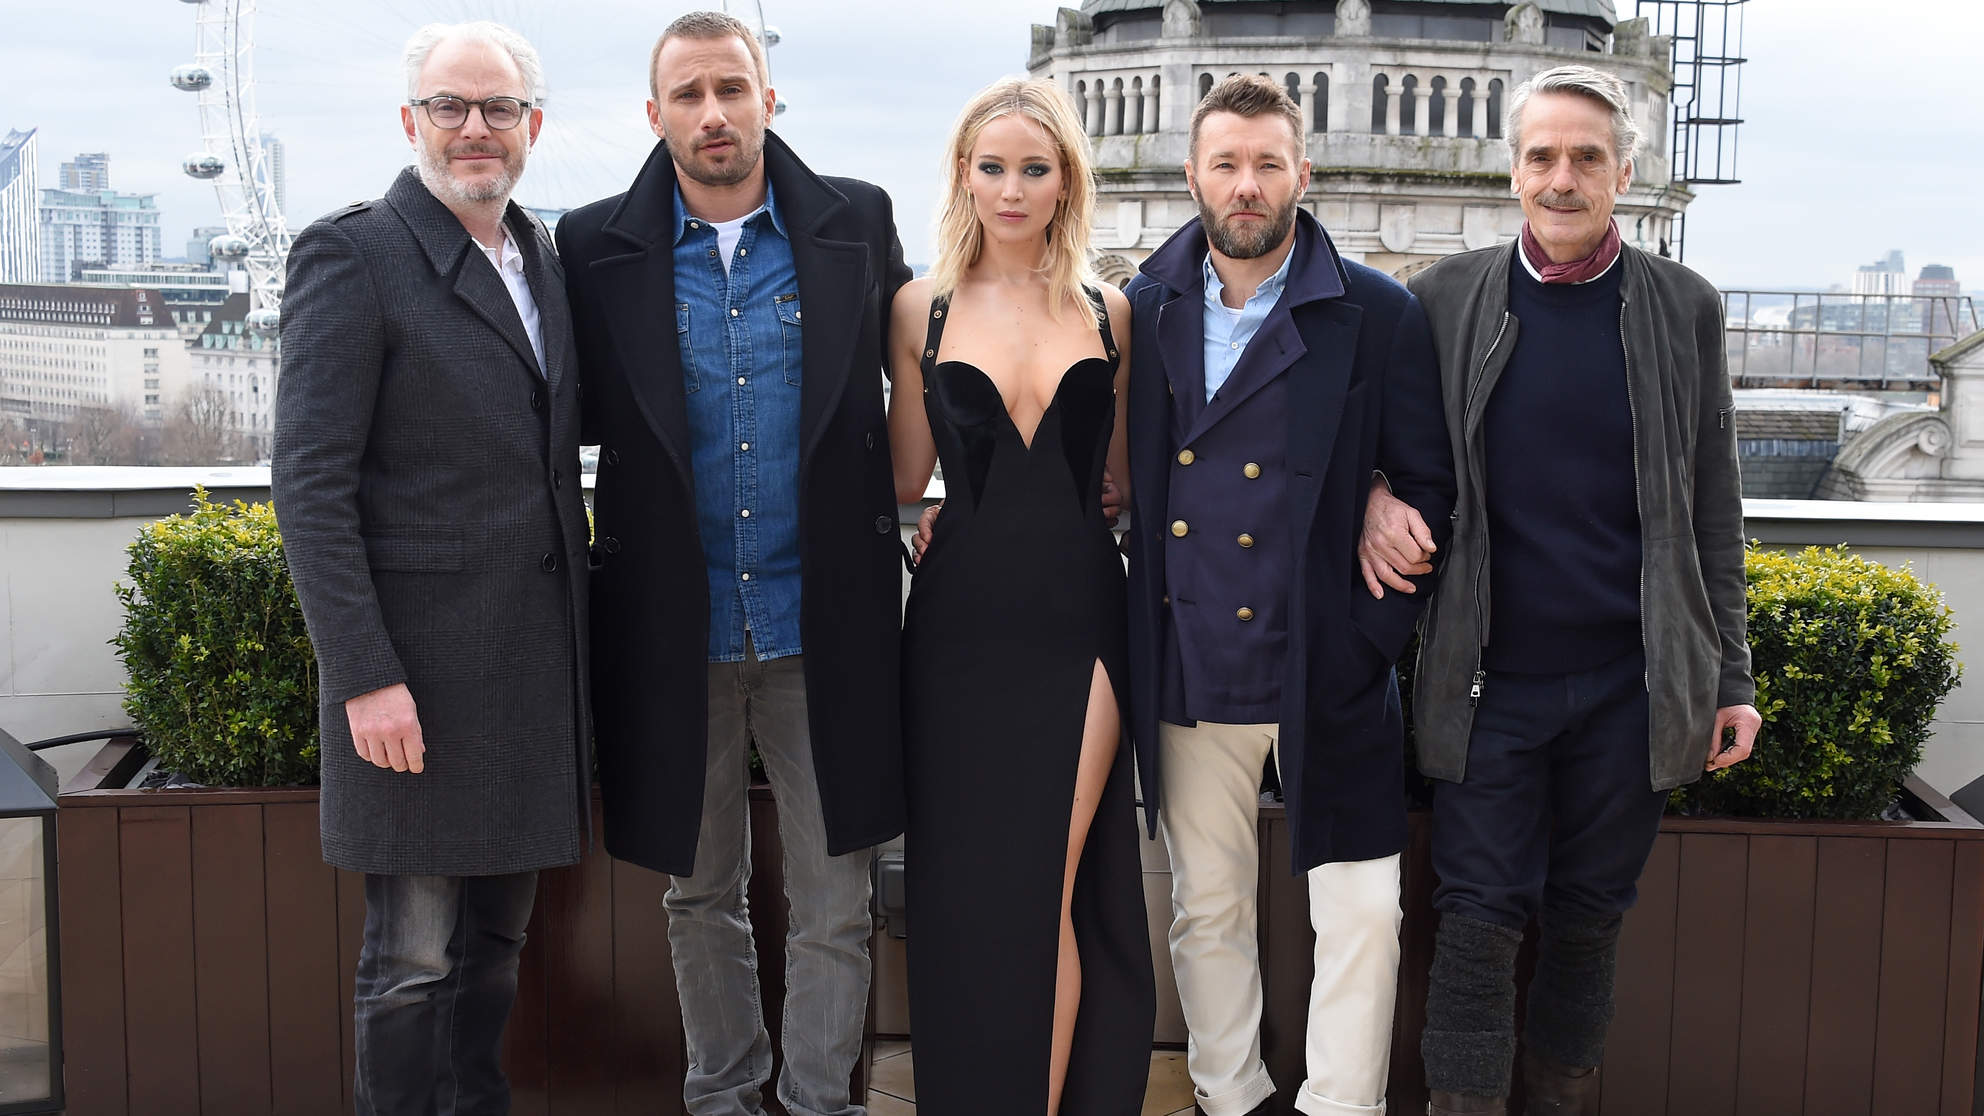 Jennifer Lawrence Doesn't Care If People Think She Looks Cold in That Dress: 'This Is Ridiculous, This is Not Feminism'